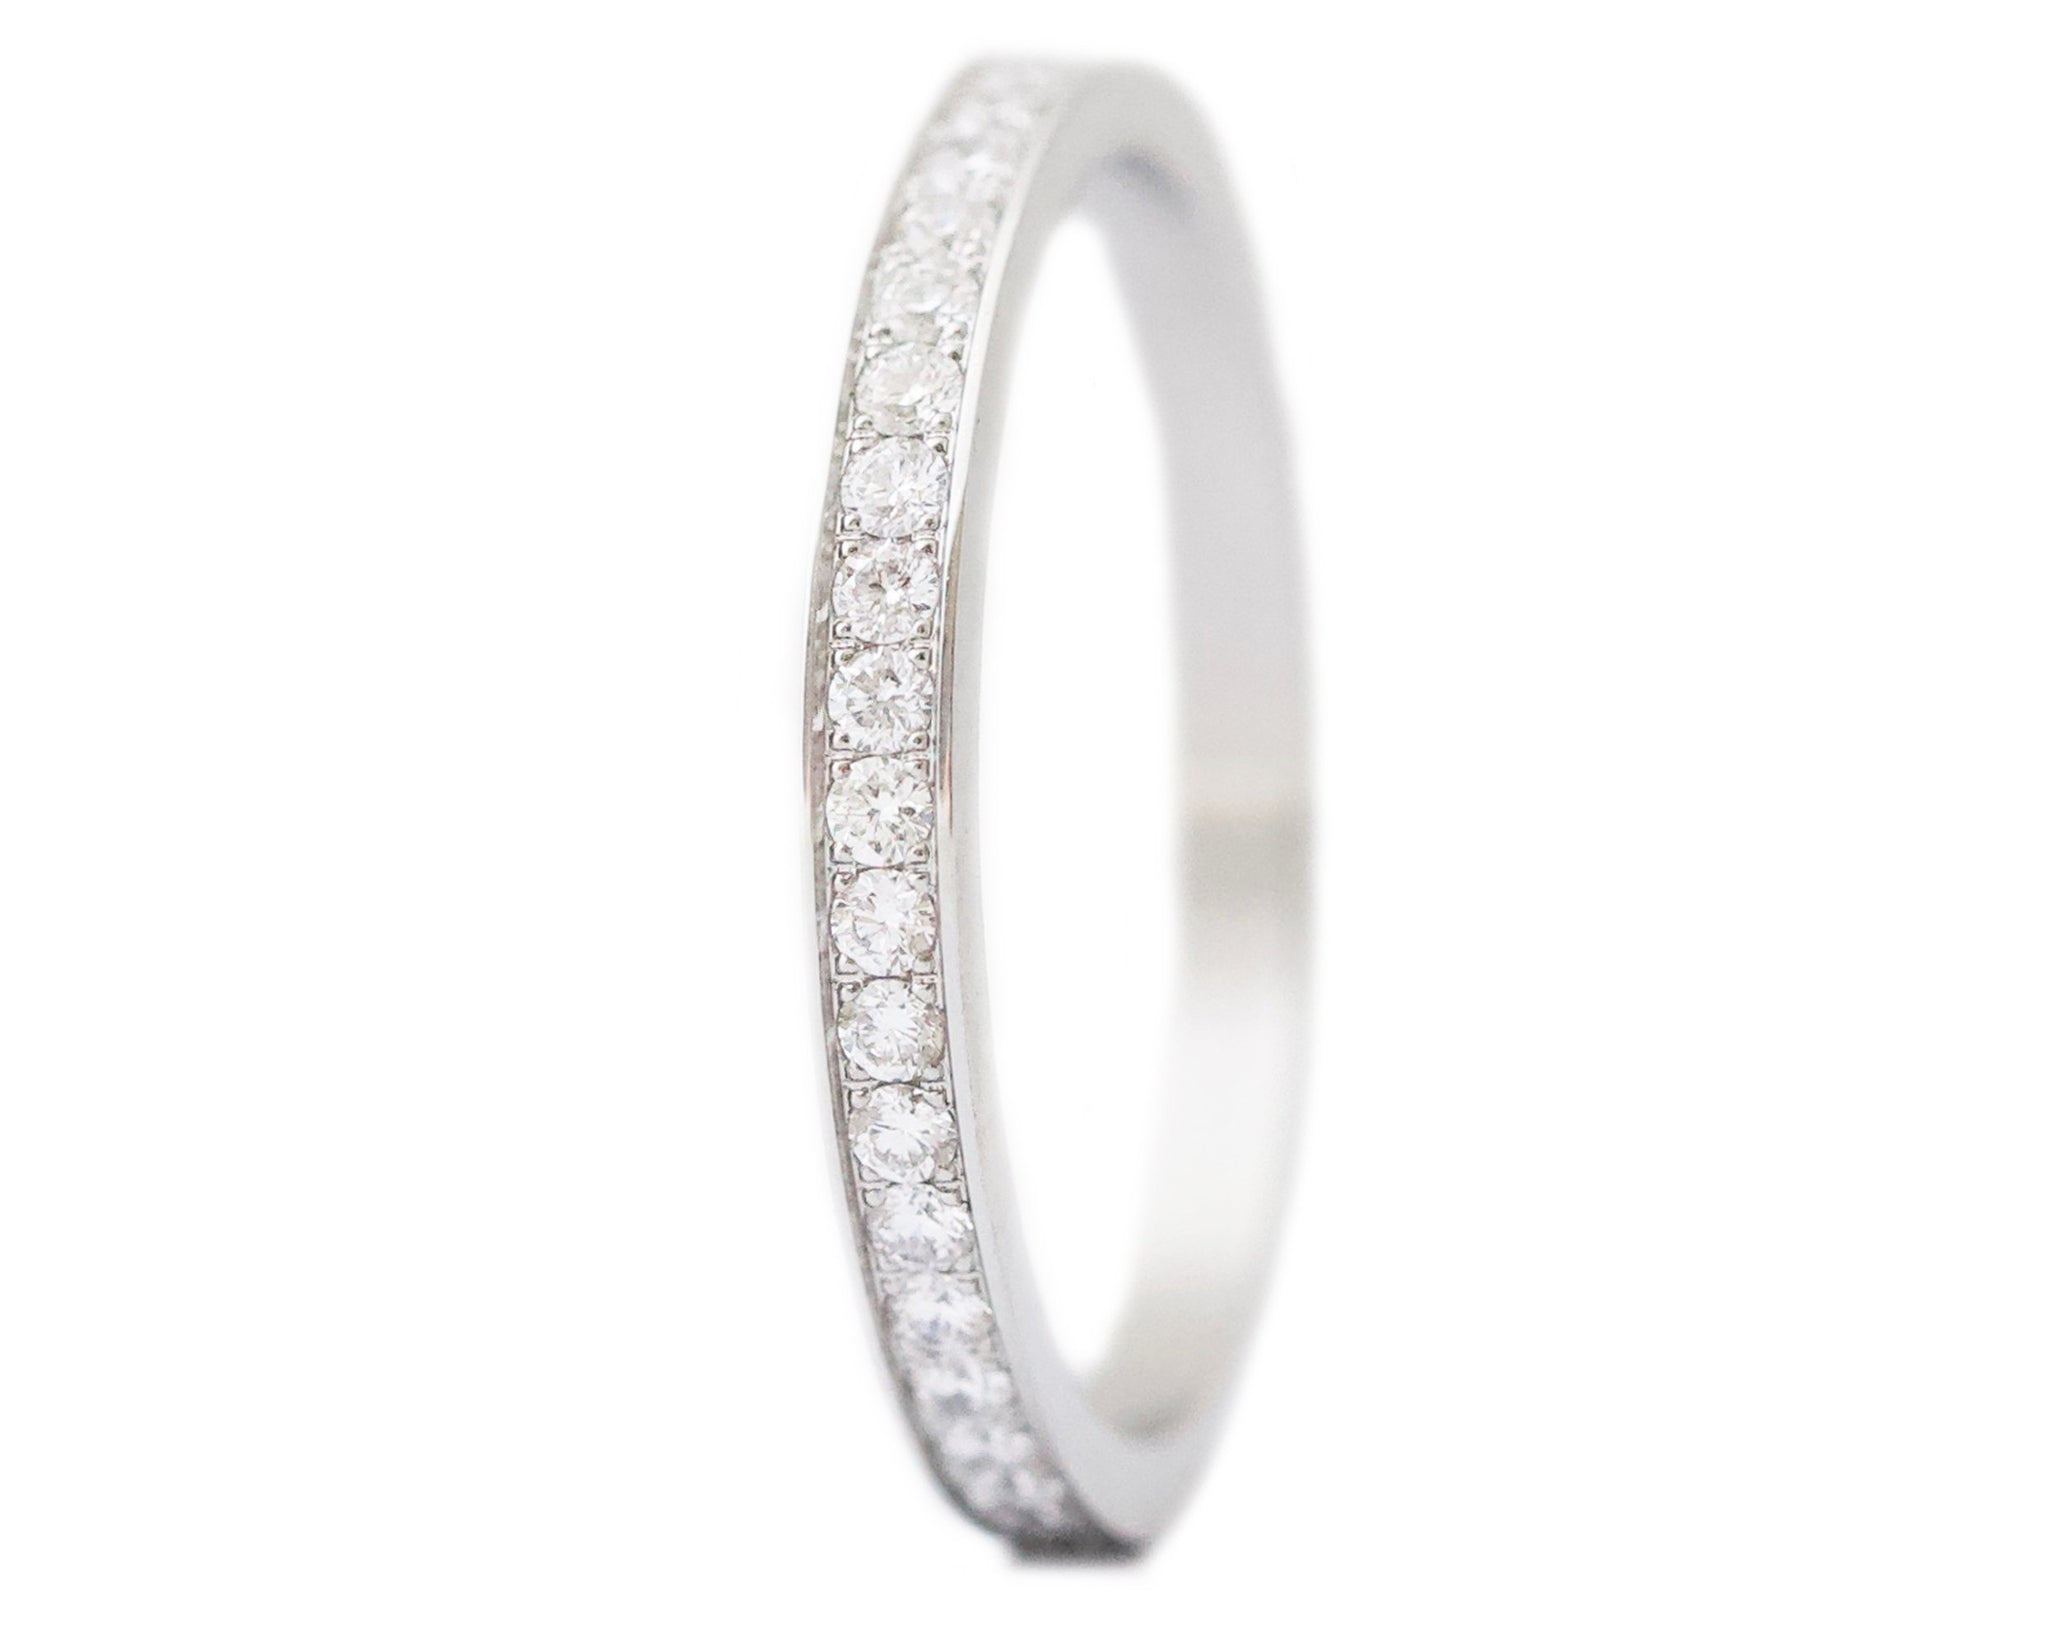 sertissage bague diamant